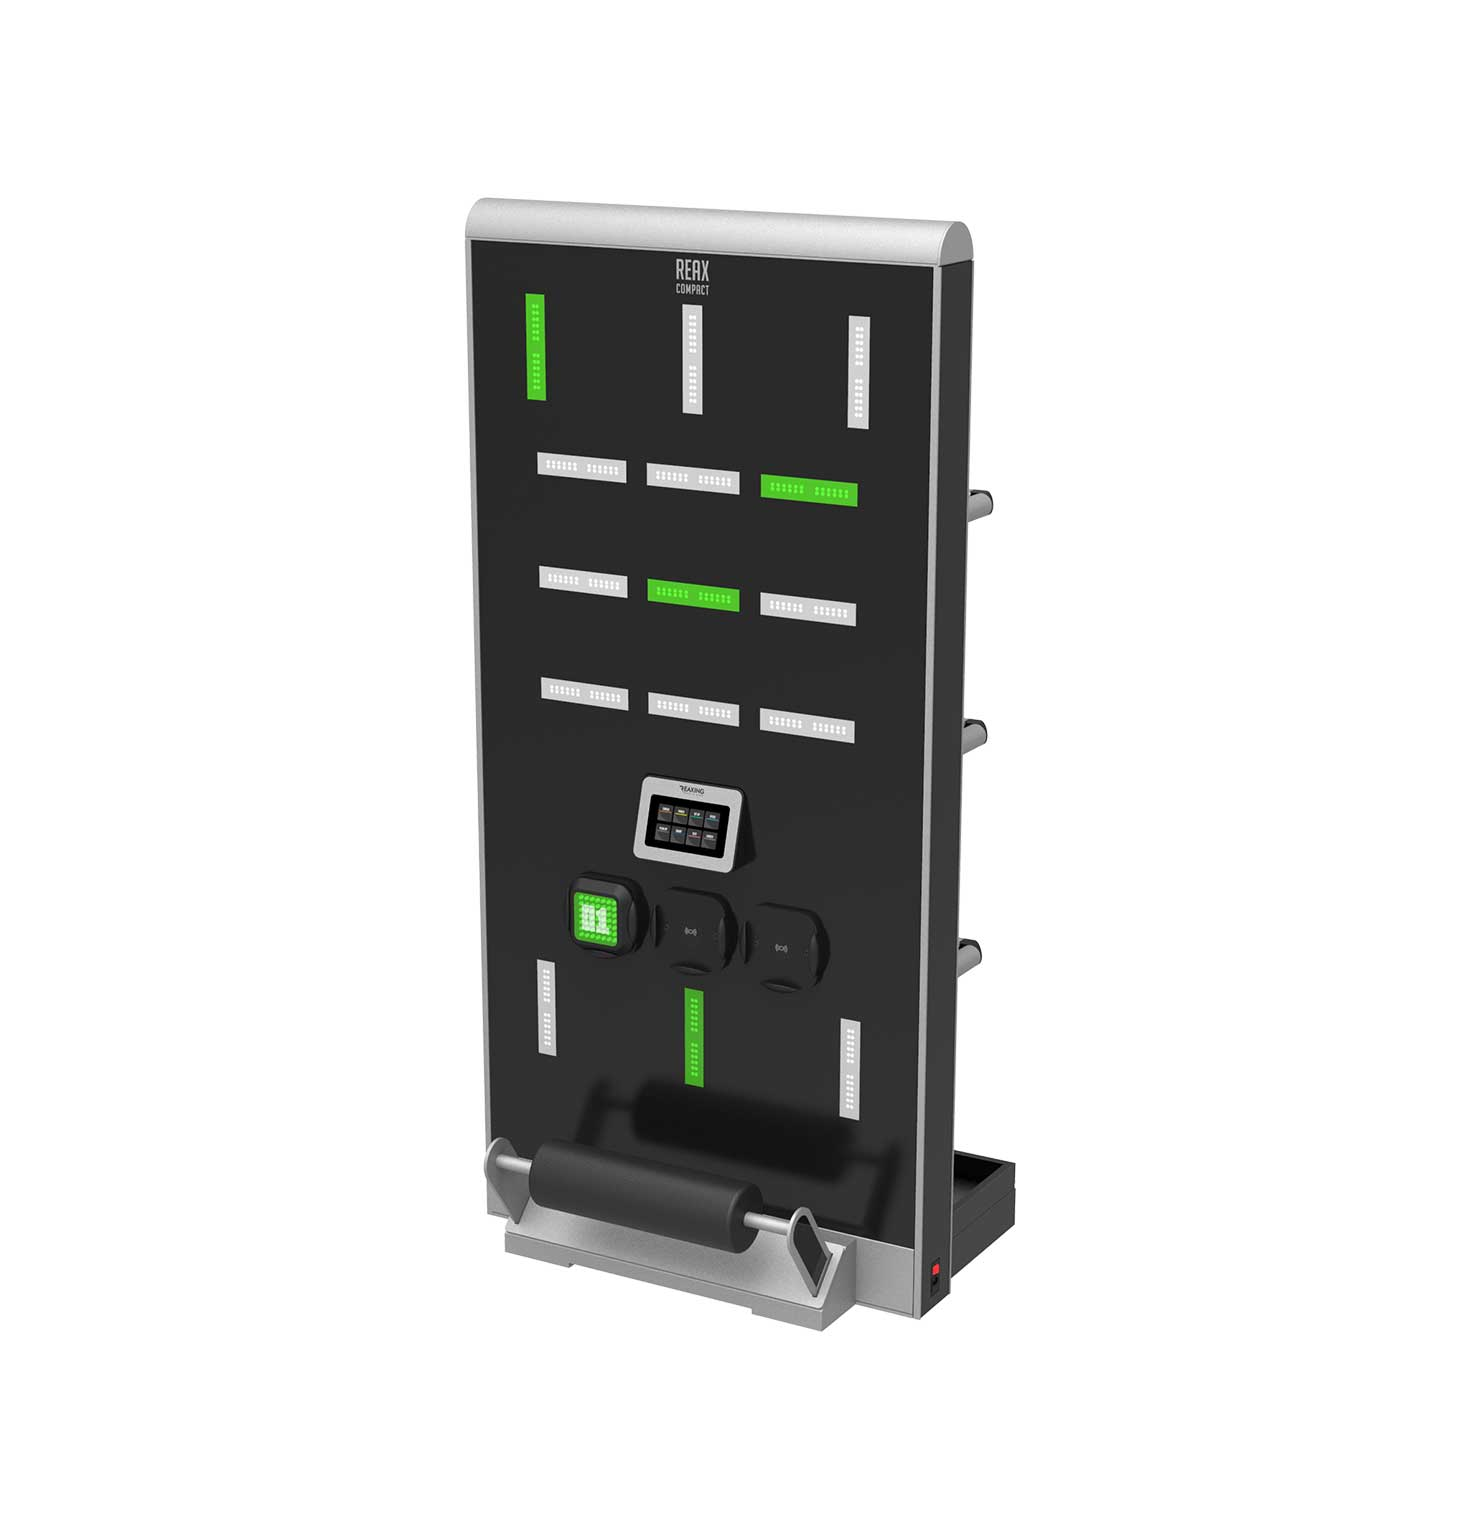 rx1650-reax-compact-wall-1-satellite-self-standing